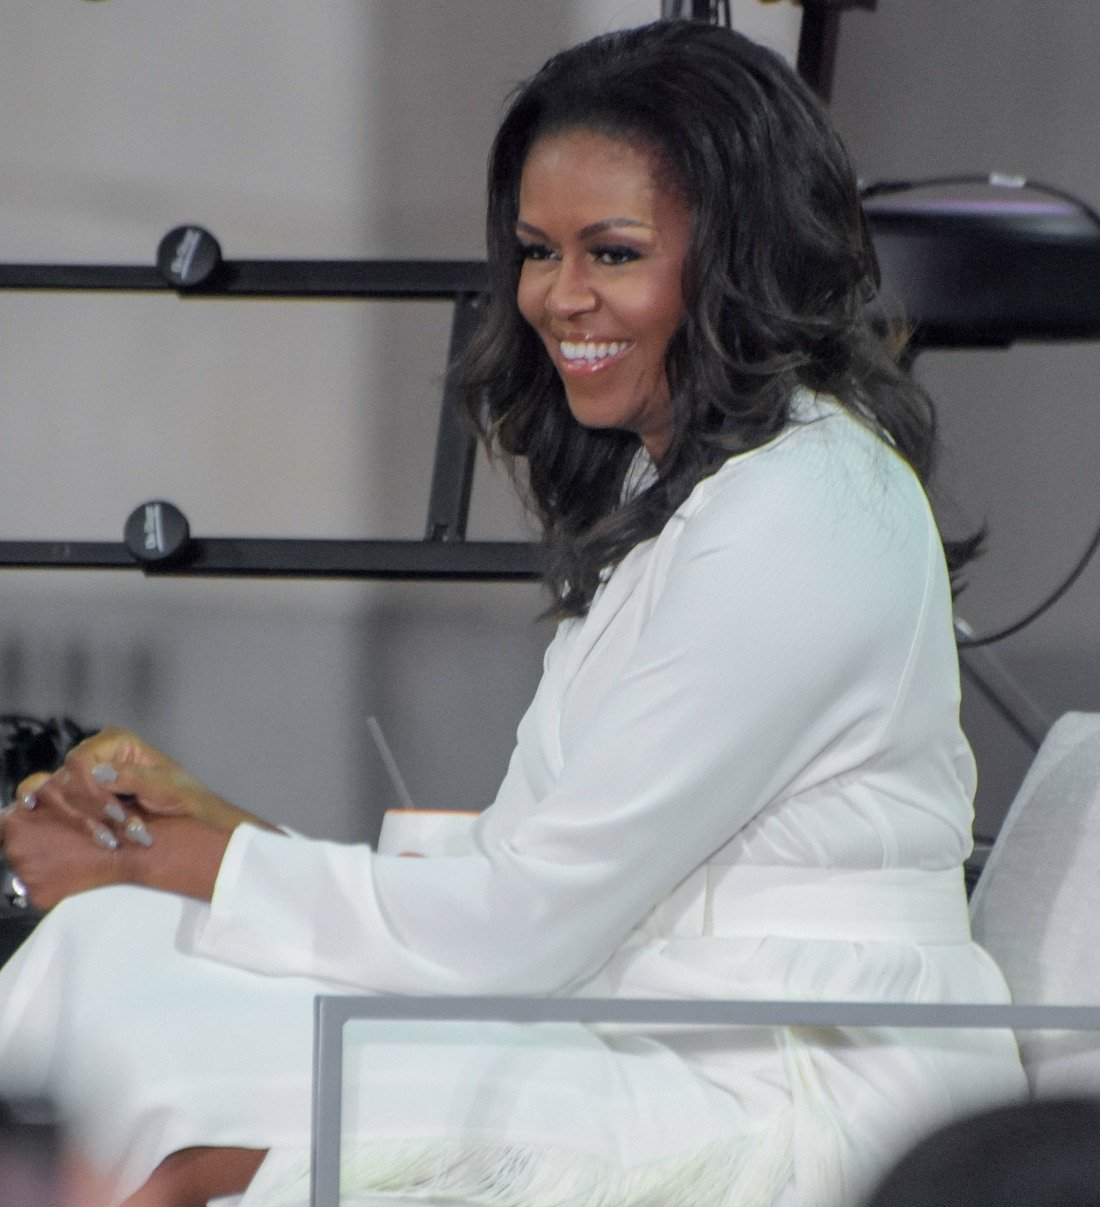 Michelle Obama's advice to Duchess Meghan: 'Don't be in a hurry to do anything'